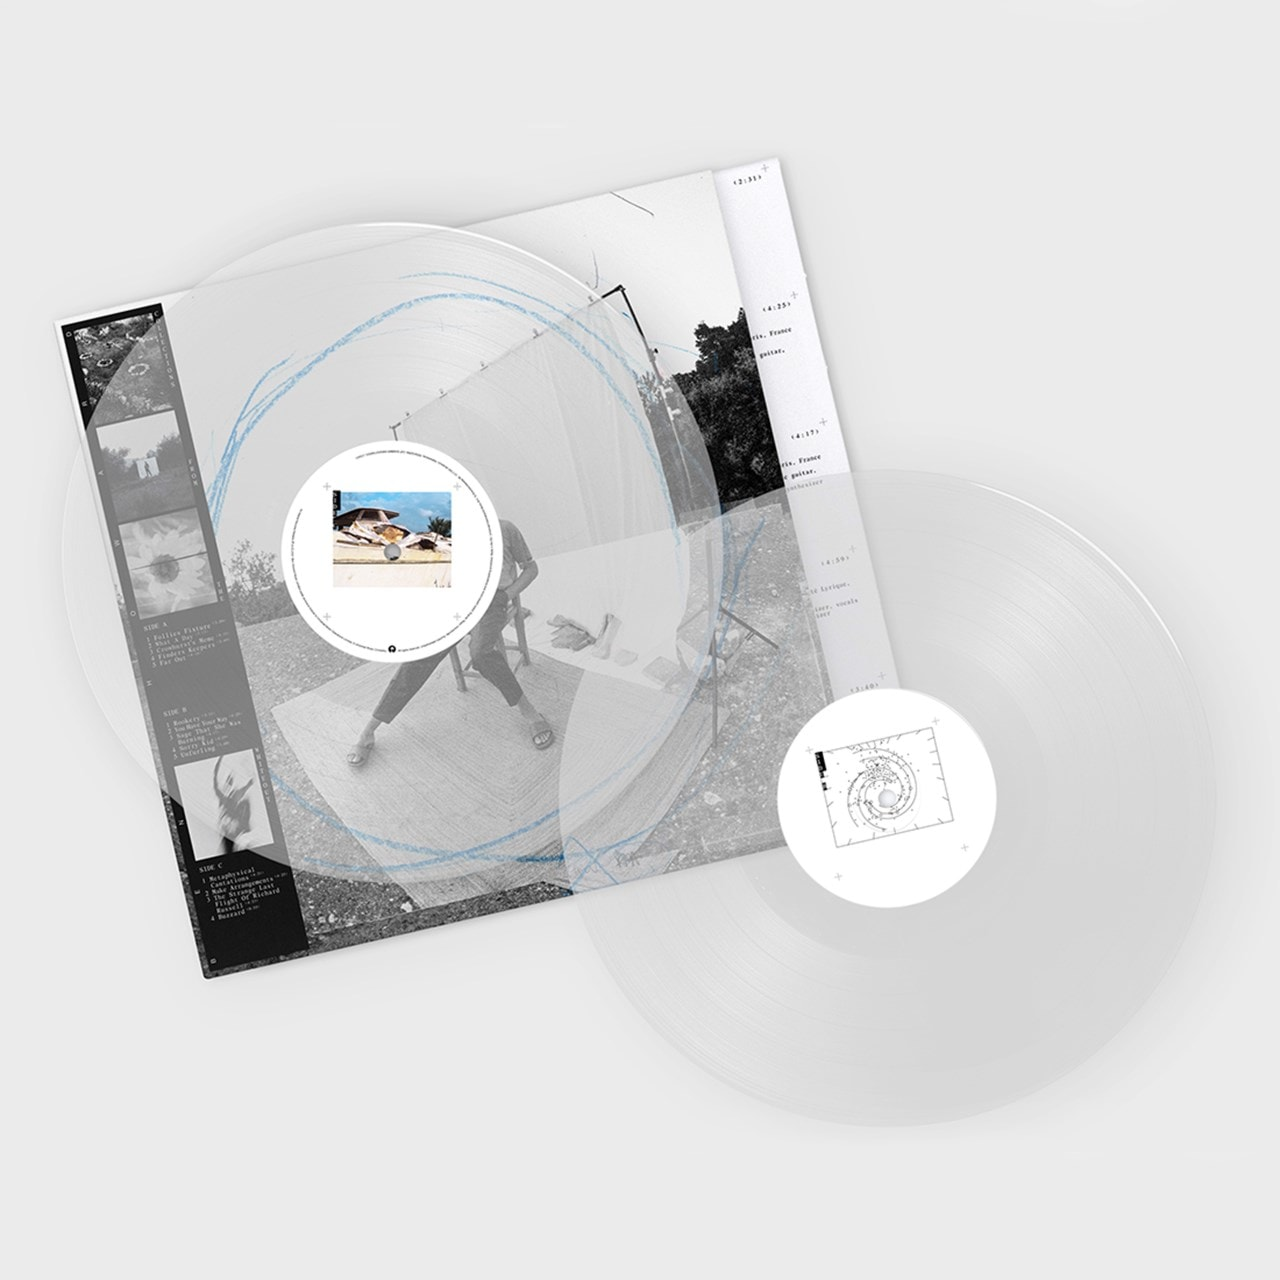 Collections from the Whiteout - Limited Edition Transparent Vinyl - 2